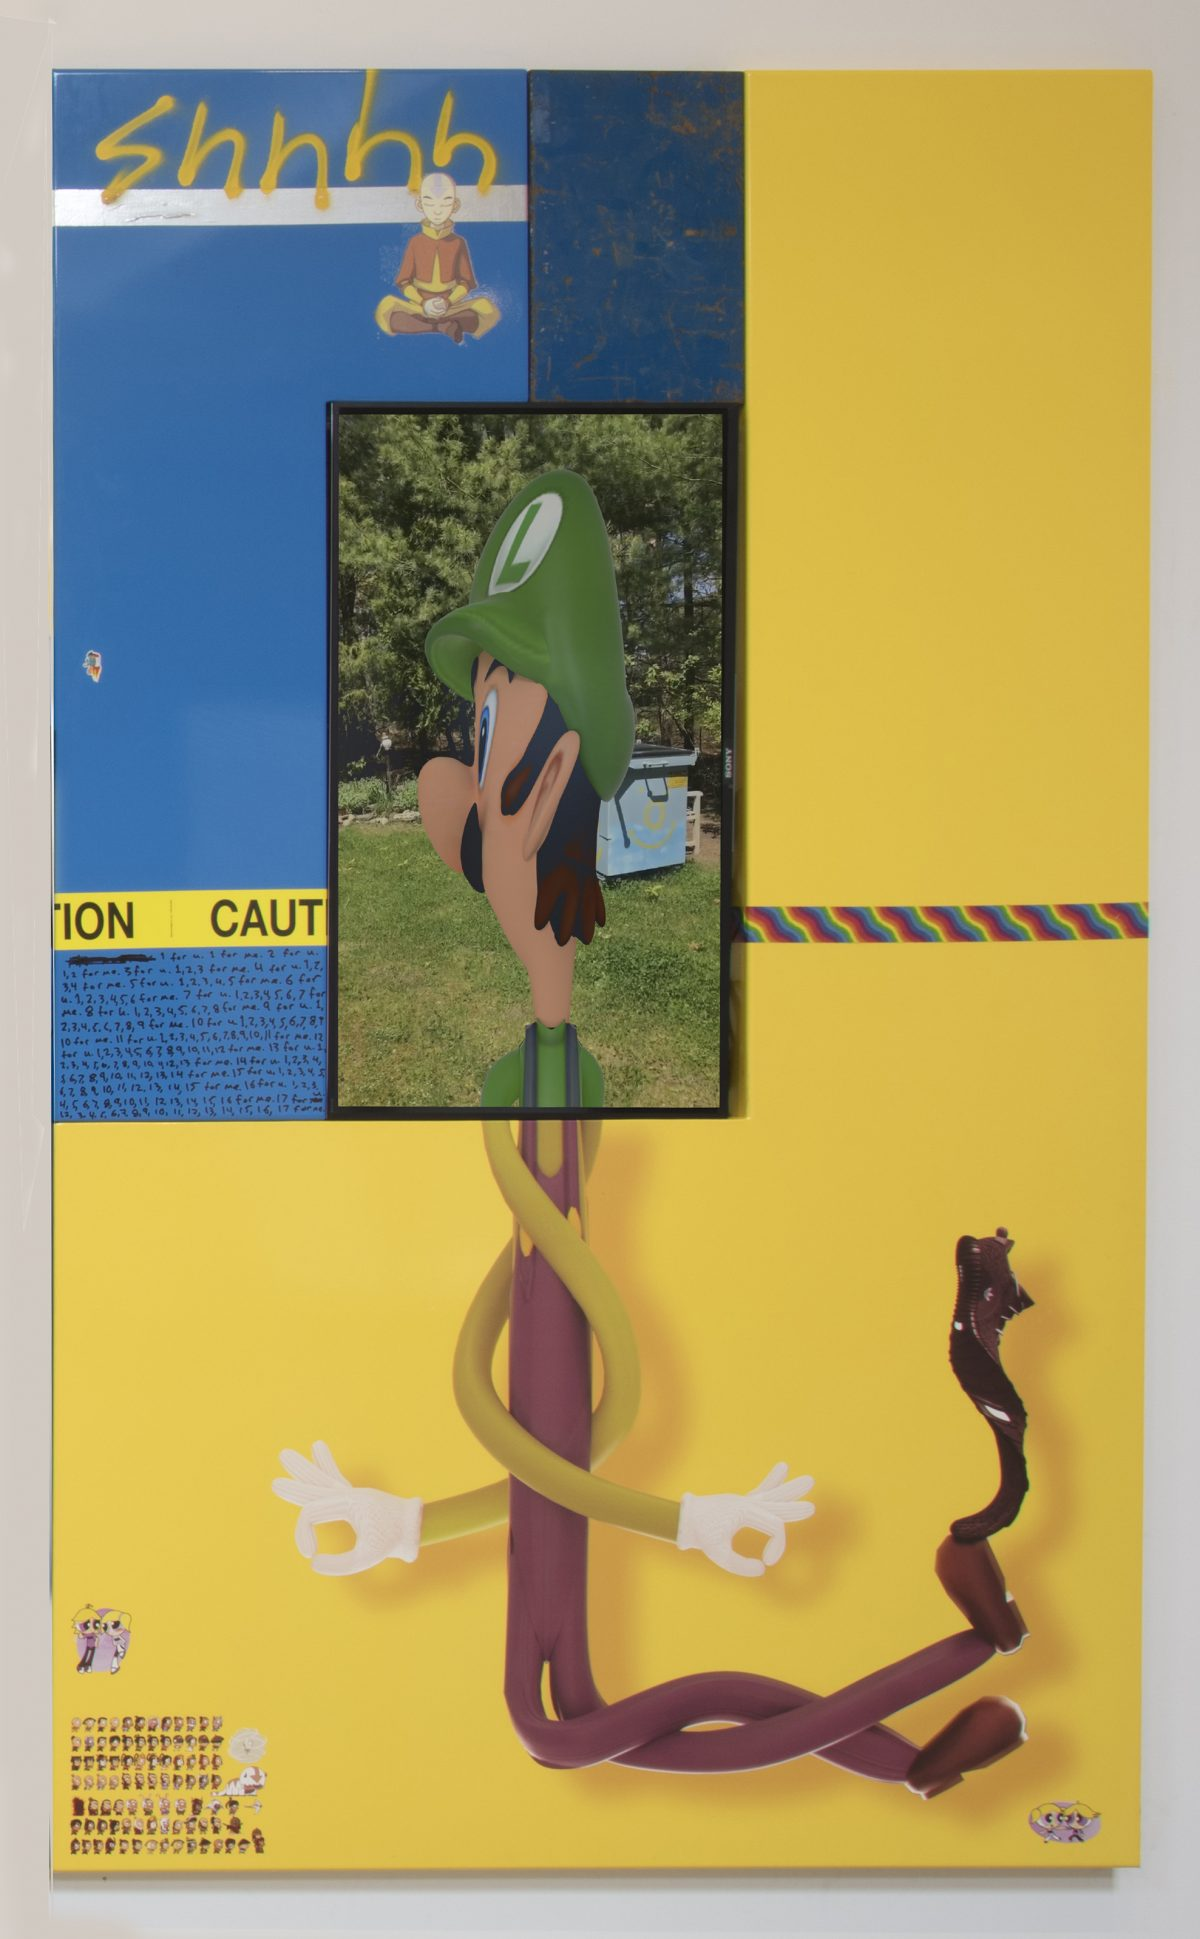 Yung Jake. <em>luigi (with ang and bubble and boomer)</em>, 2017. UV print, spray paint, stickers, tape and ink on powder coated steel, found metal and monitor, 96 x 60 inches